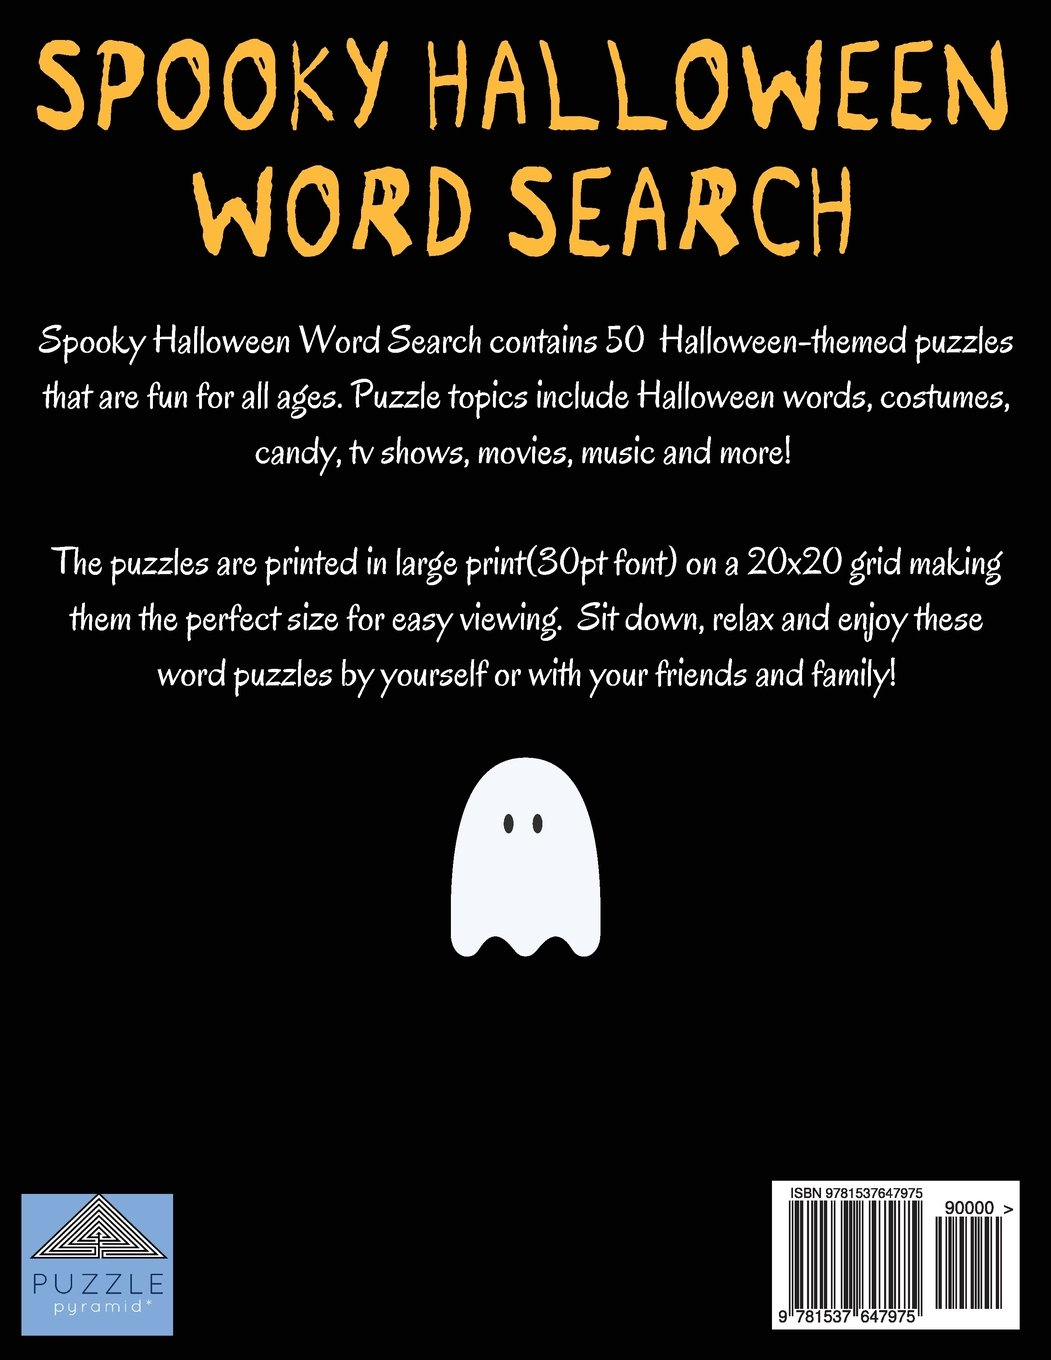 spooky halloween word search large print word search word search book halloween puzzles word find puzzle pyramid 9781537647975 amazoncom books